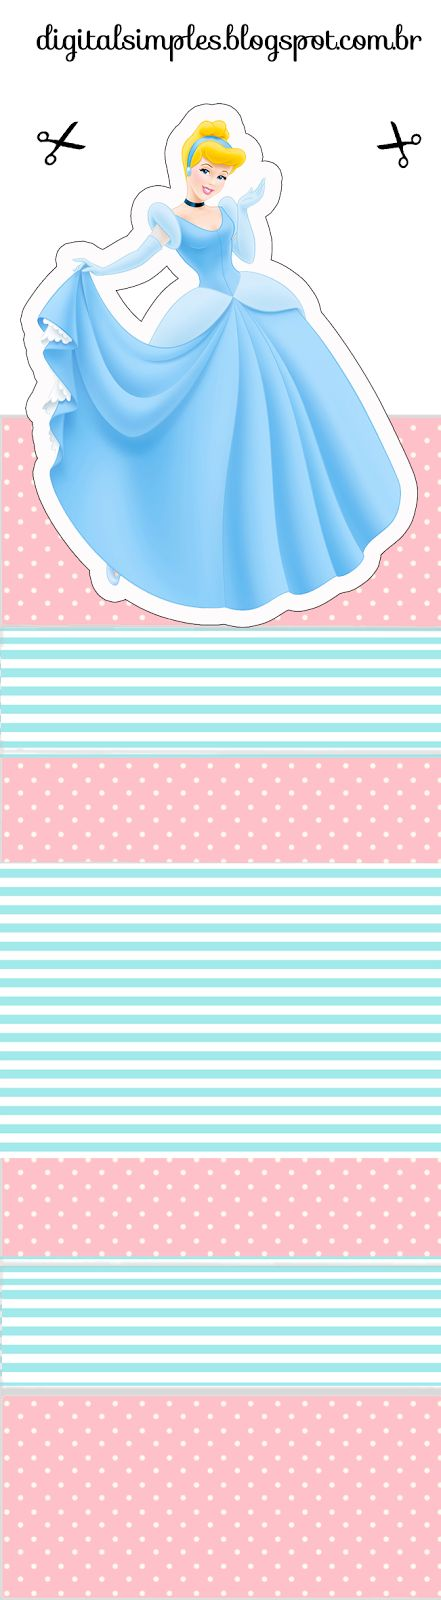 Cinderella Free Printable Original Nuggets Wrappers. | Oh My Fiesta! in english